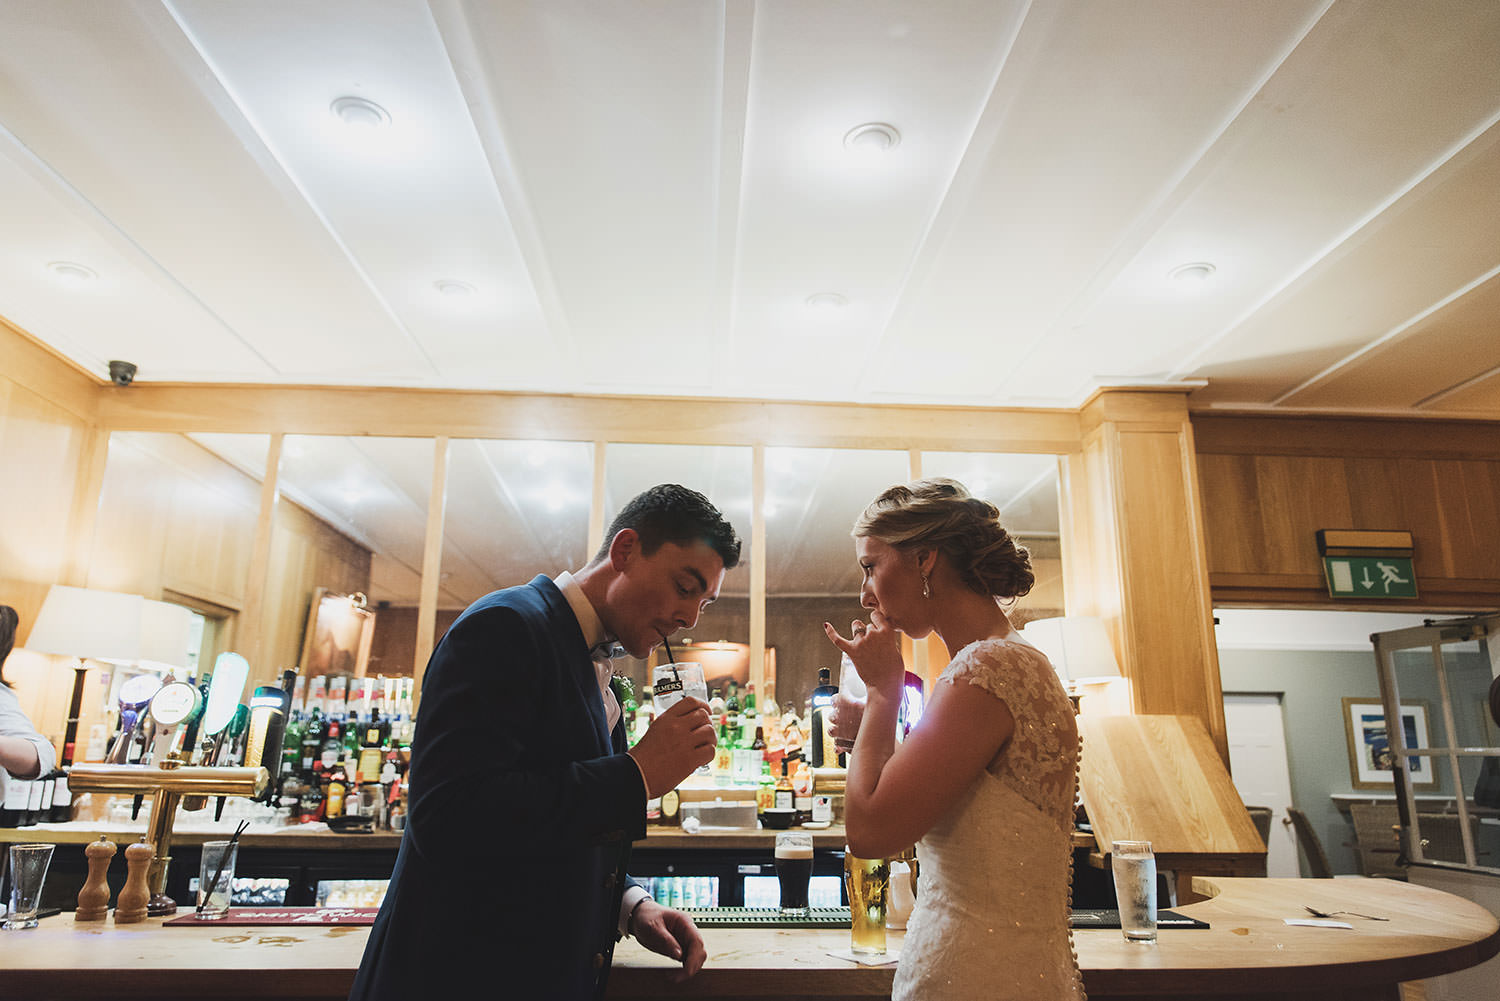 dunraven-arms-hotel-wedding-photography-153.jpg